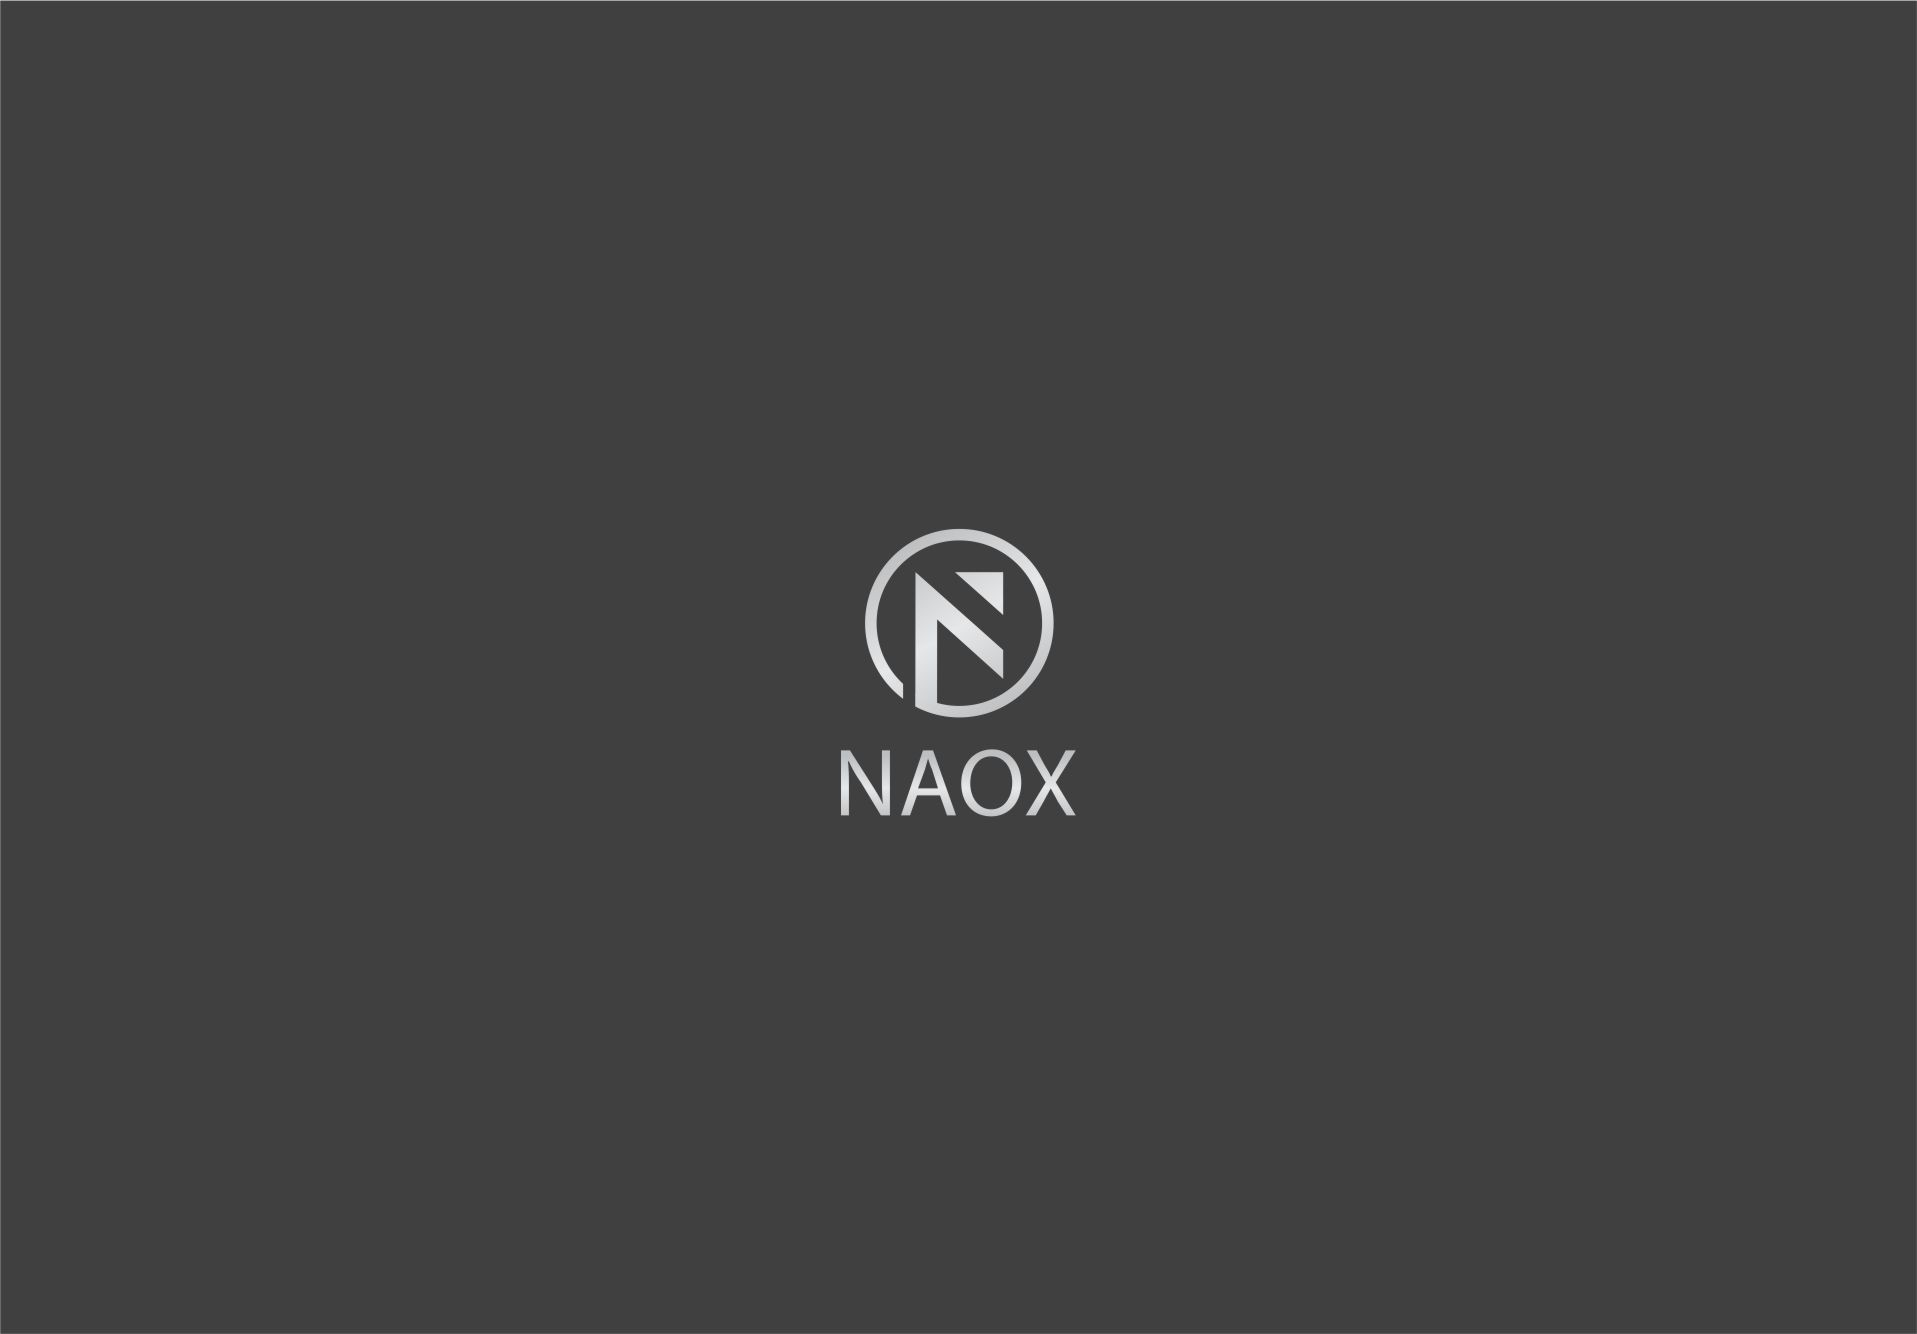 Welcome in the NAOX adventure - We need your help for a logo